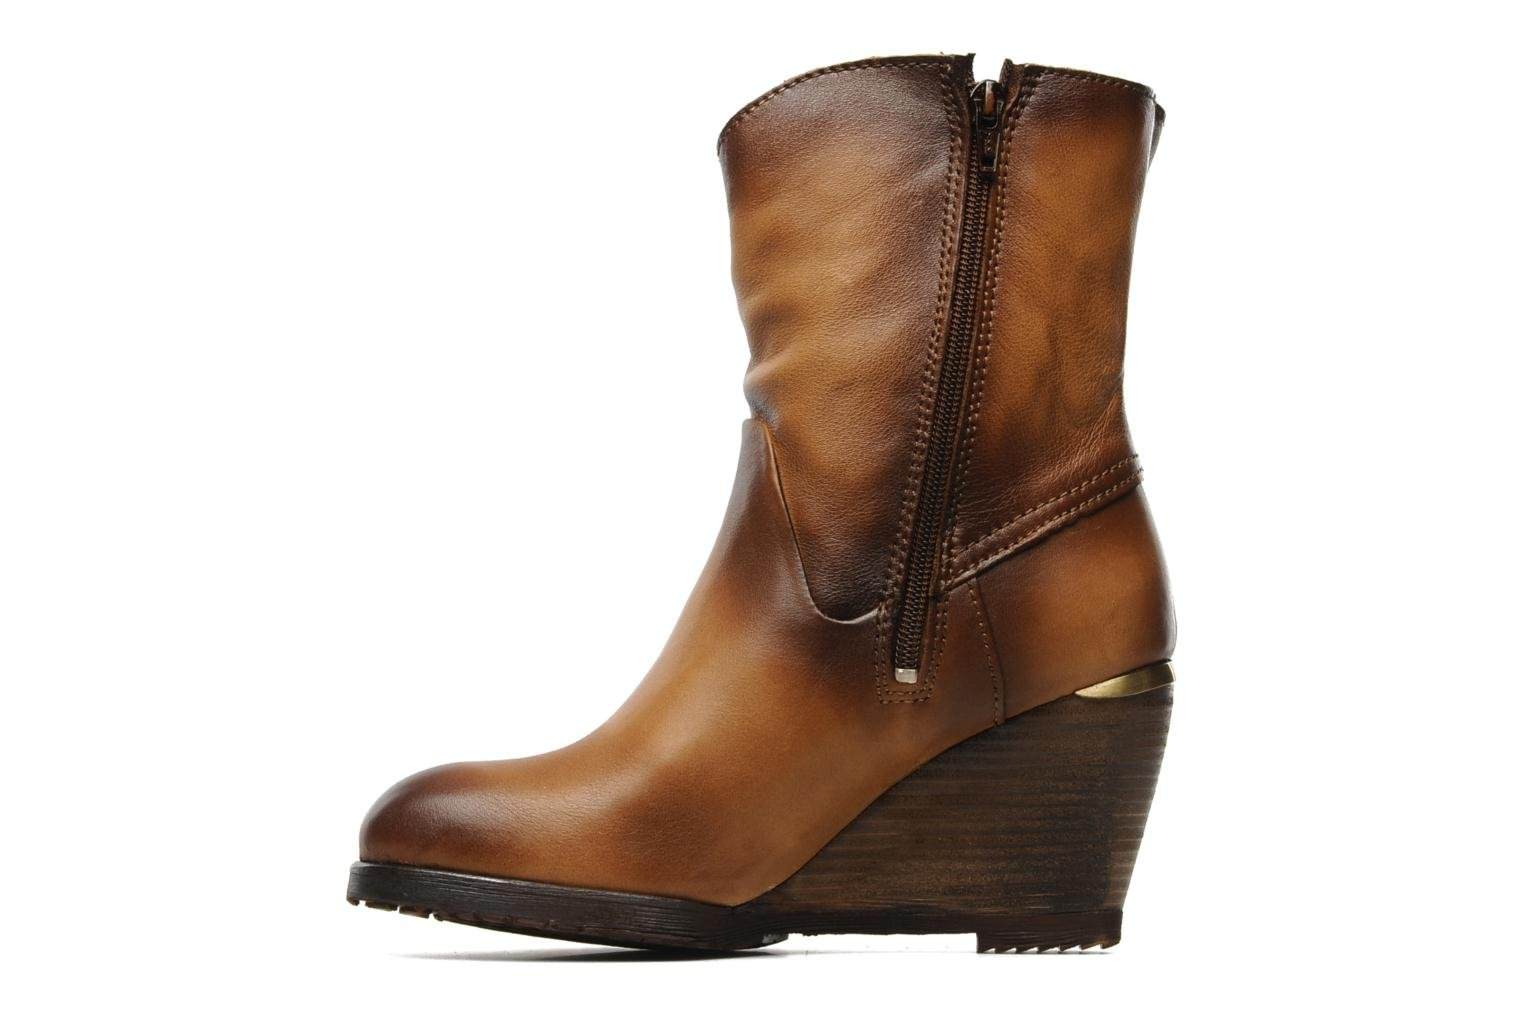 Bottines et boots Bronx LUNE 33371 Marron vue face